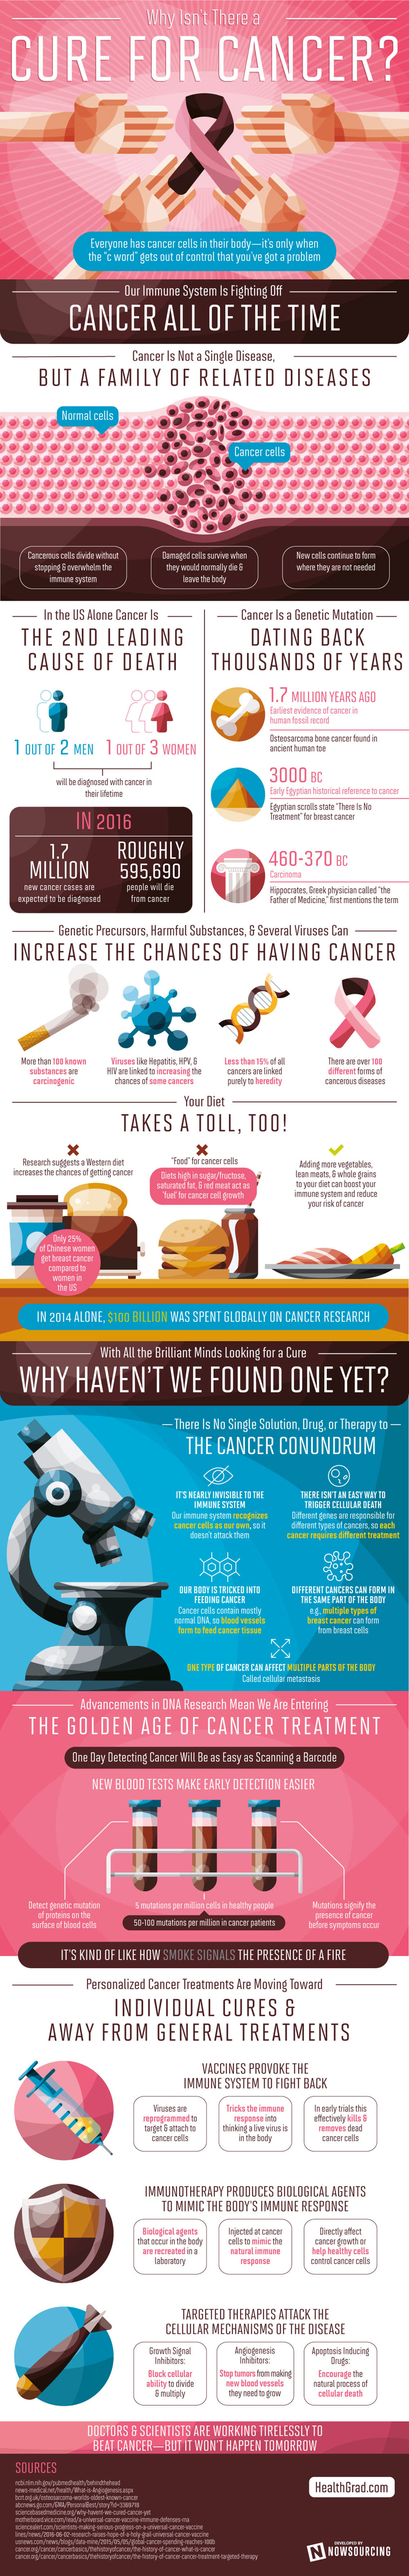 Why Haven't We Found a Cure for Cancer Yet Infographic